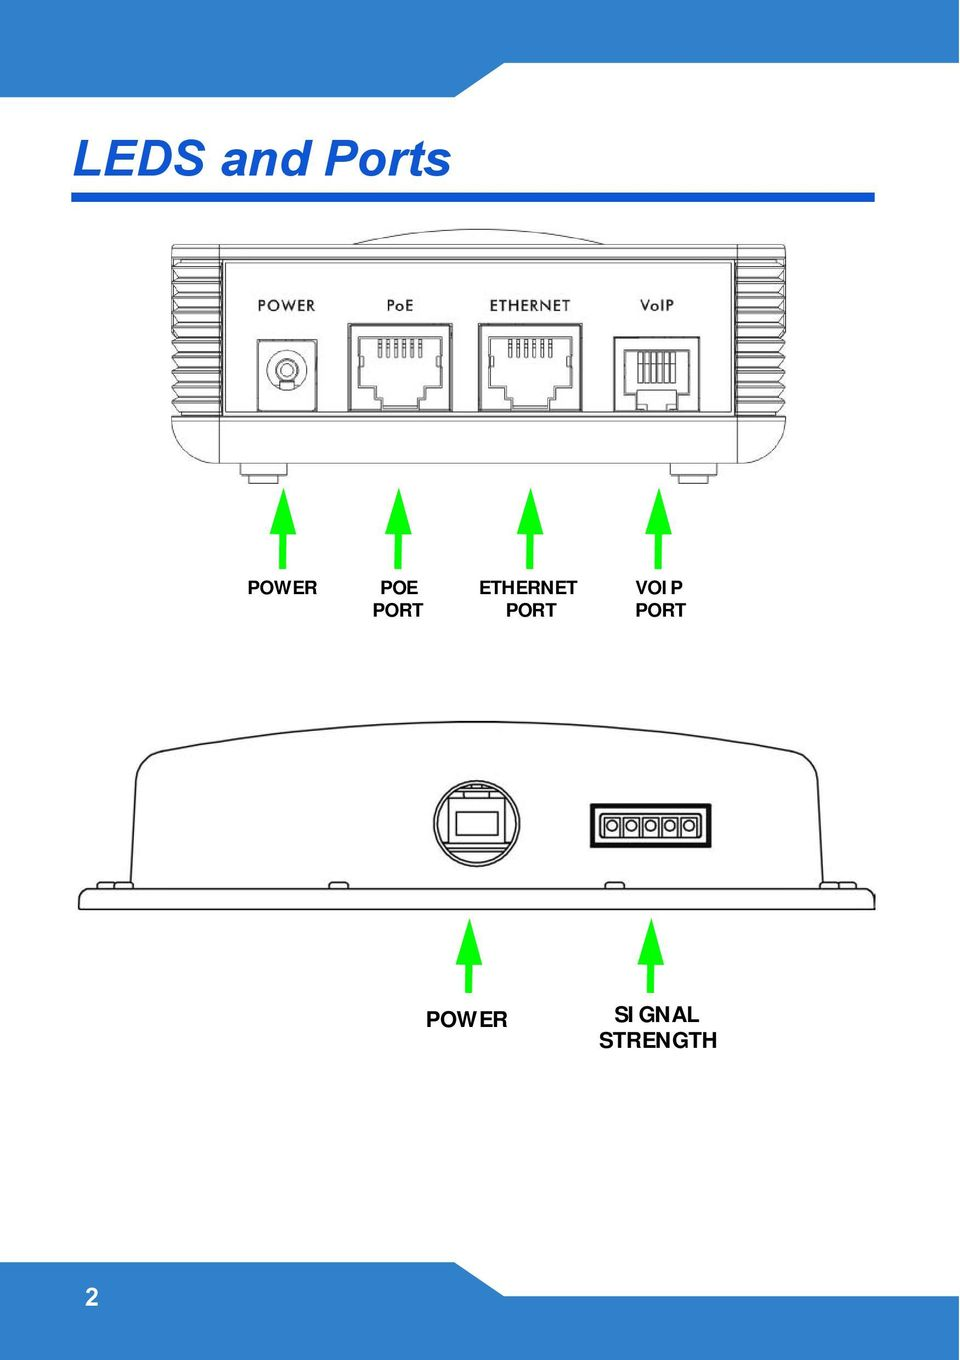 Max 306m1 Series Wimax Mimo Outdoor Simple Cpe Default Login Telephone Rewiring Adsl Quotpro Installquot Voip Port